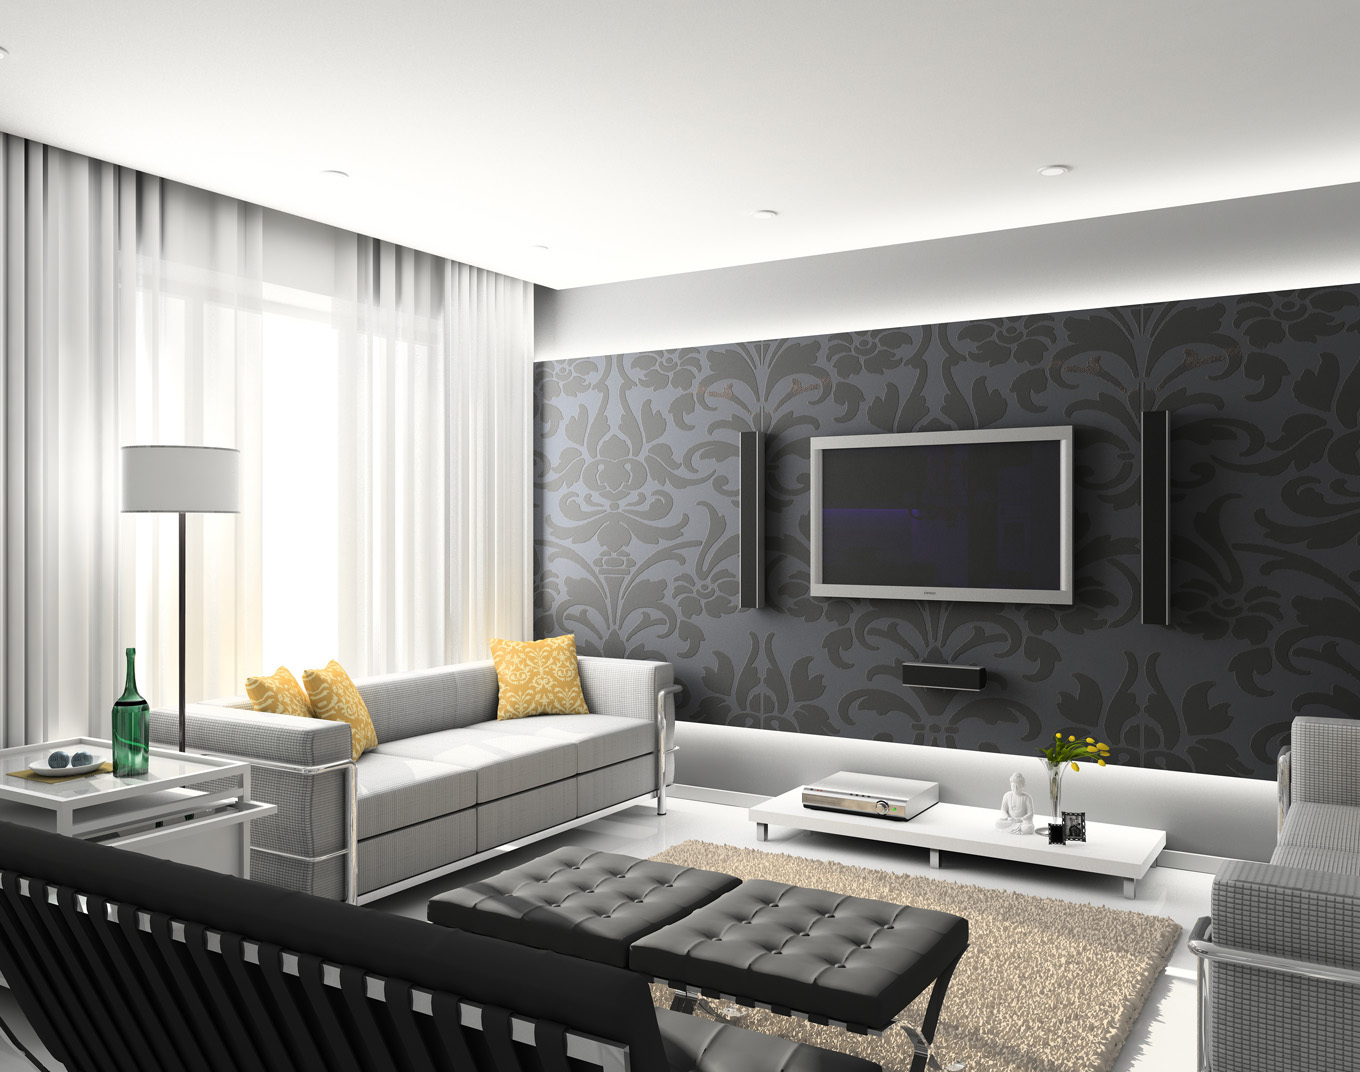 Excellent and Elegant Black Wall Mural Decor with Symmetrical Mounted TV and Sound System